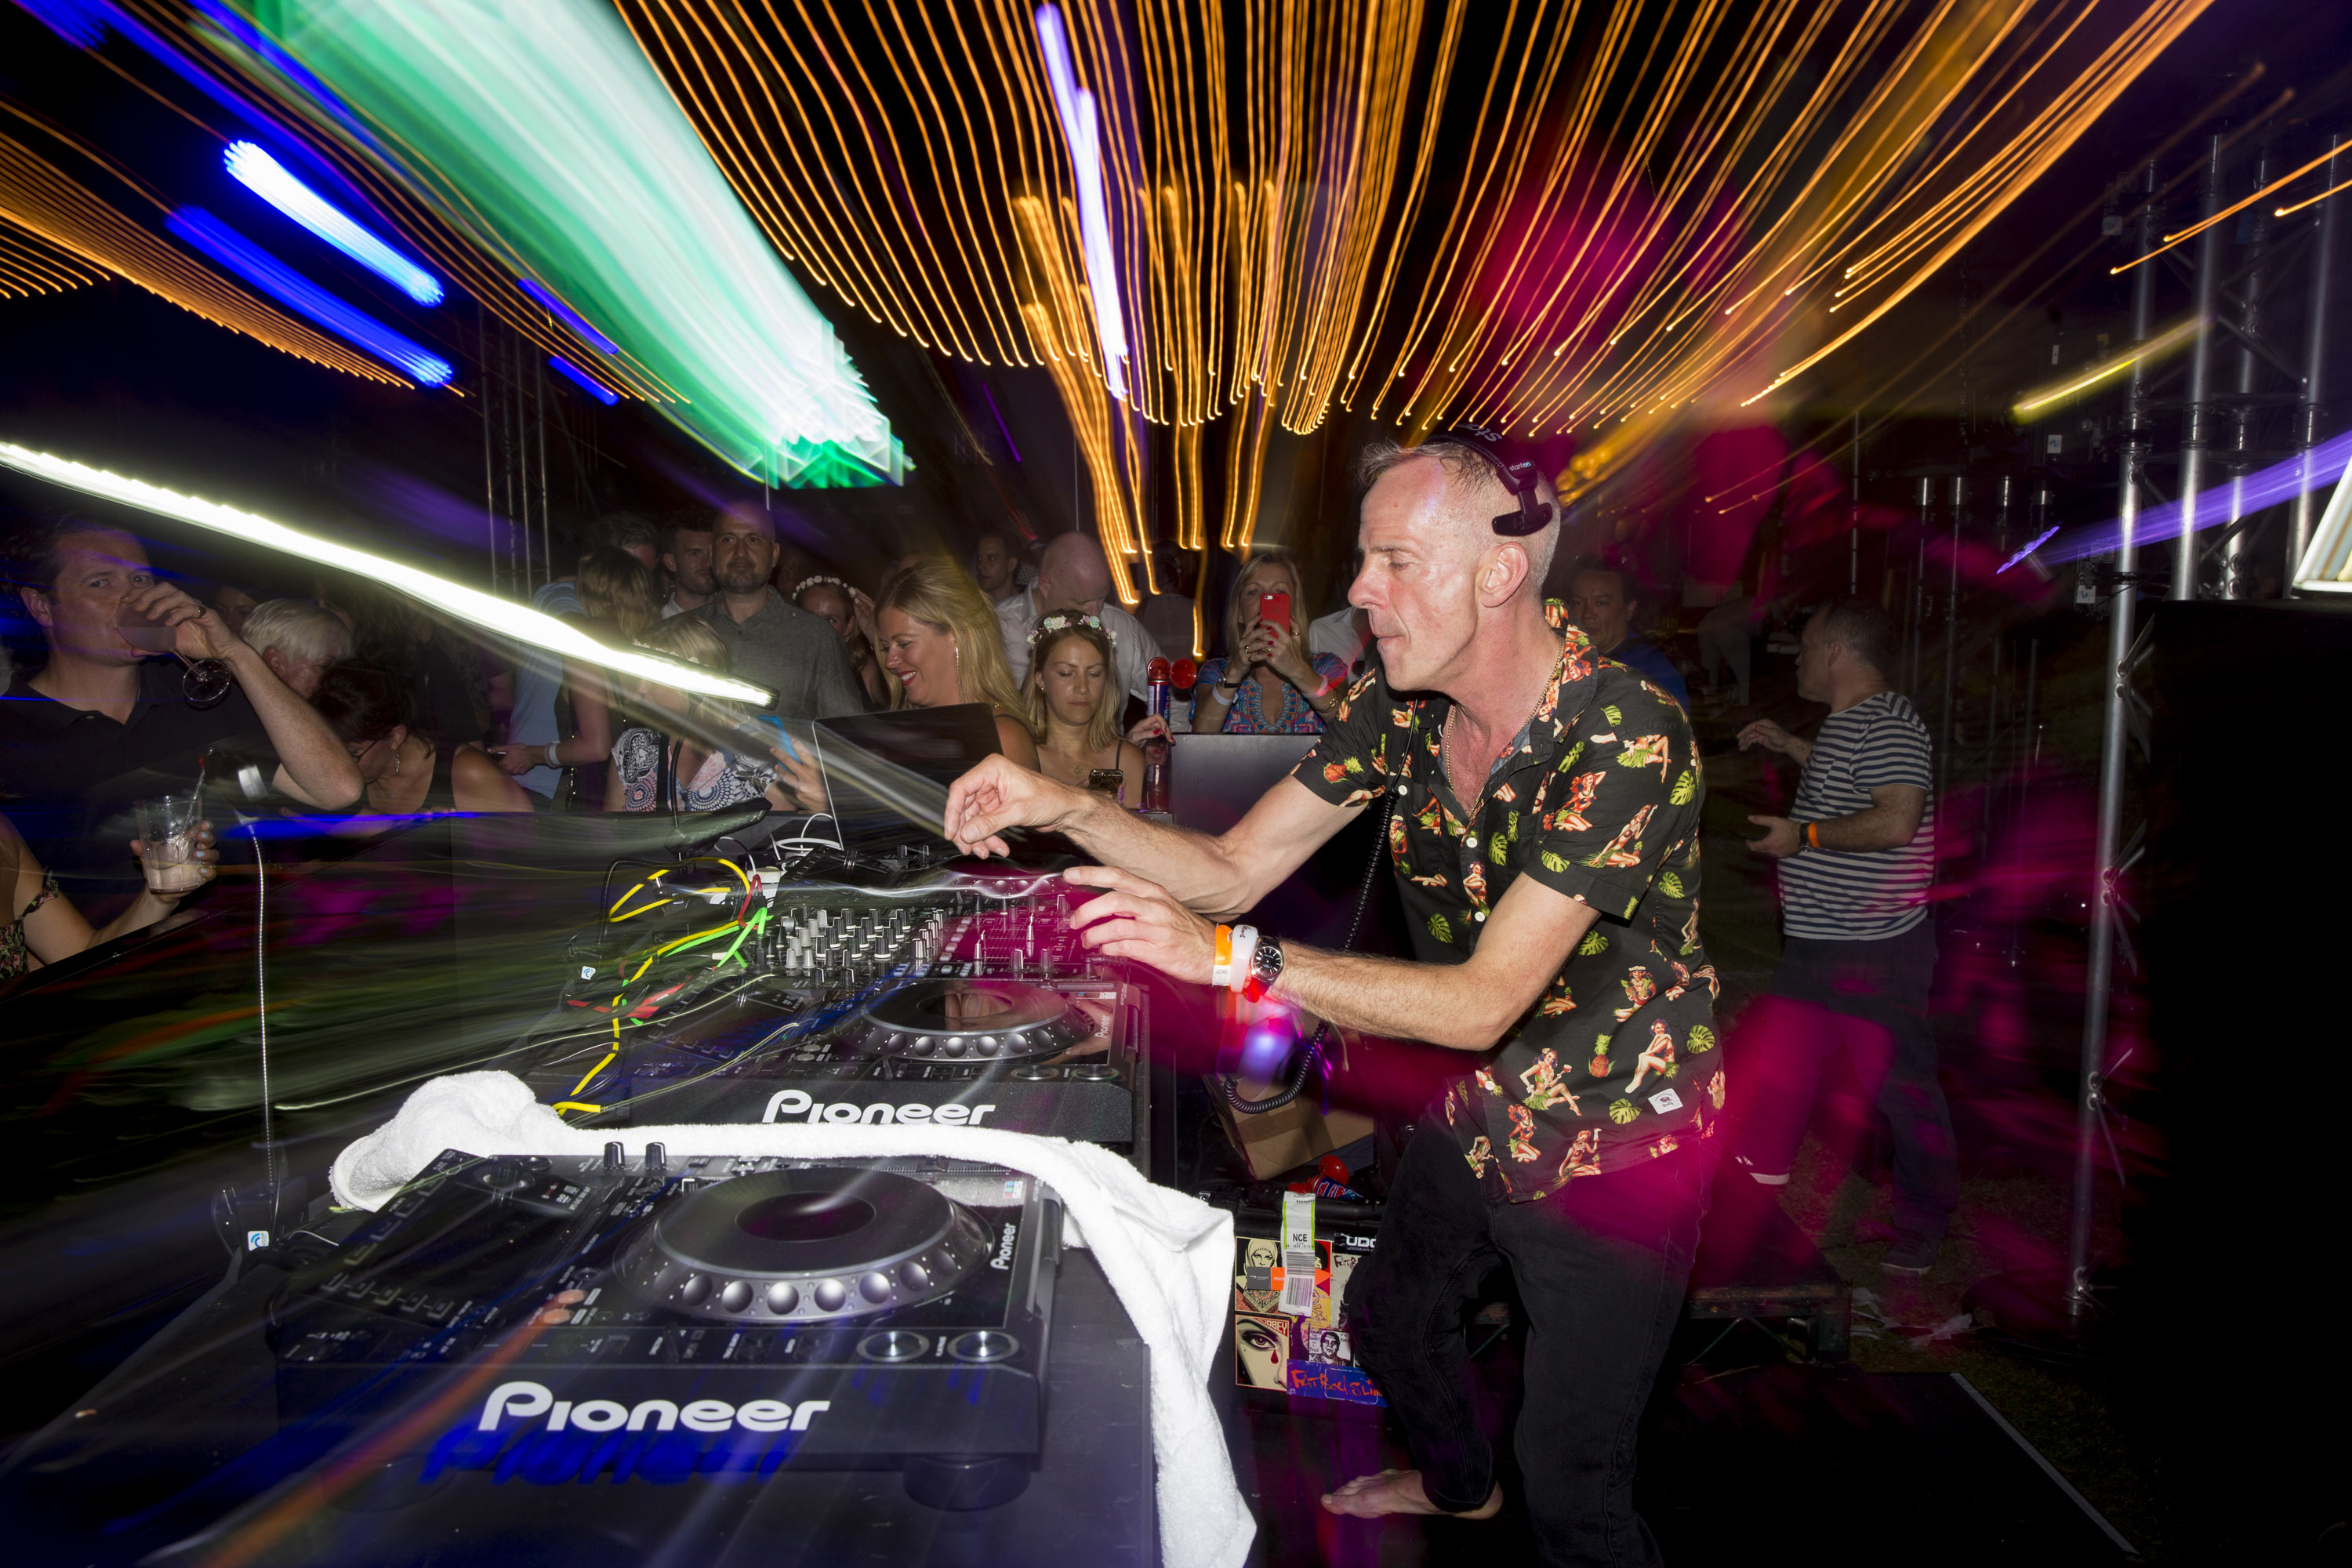 Fatboy Slim djing at party